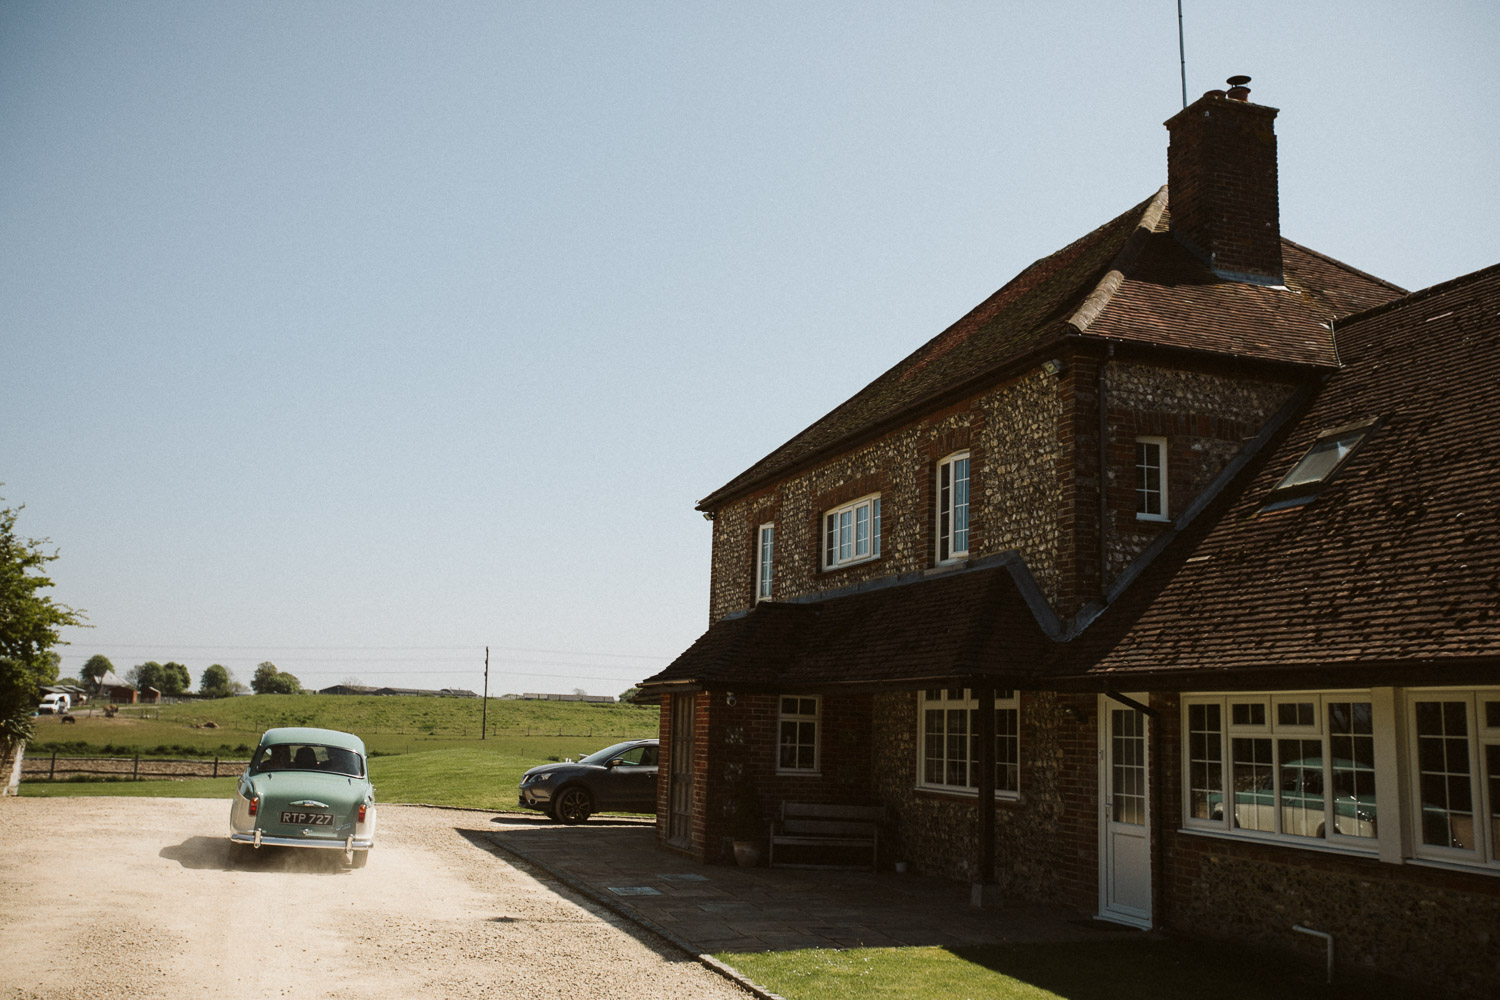 groom and friends leave the house in a vintage car wide angle